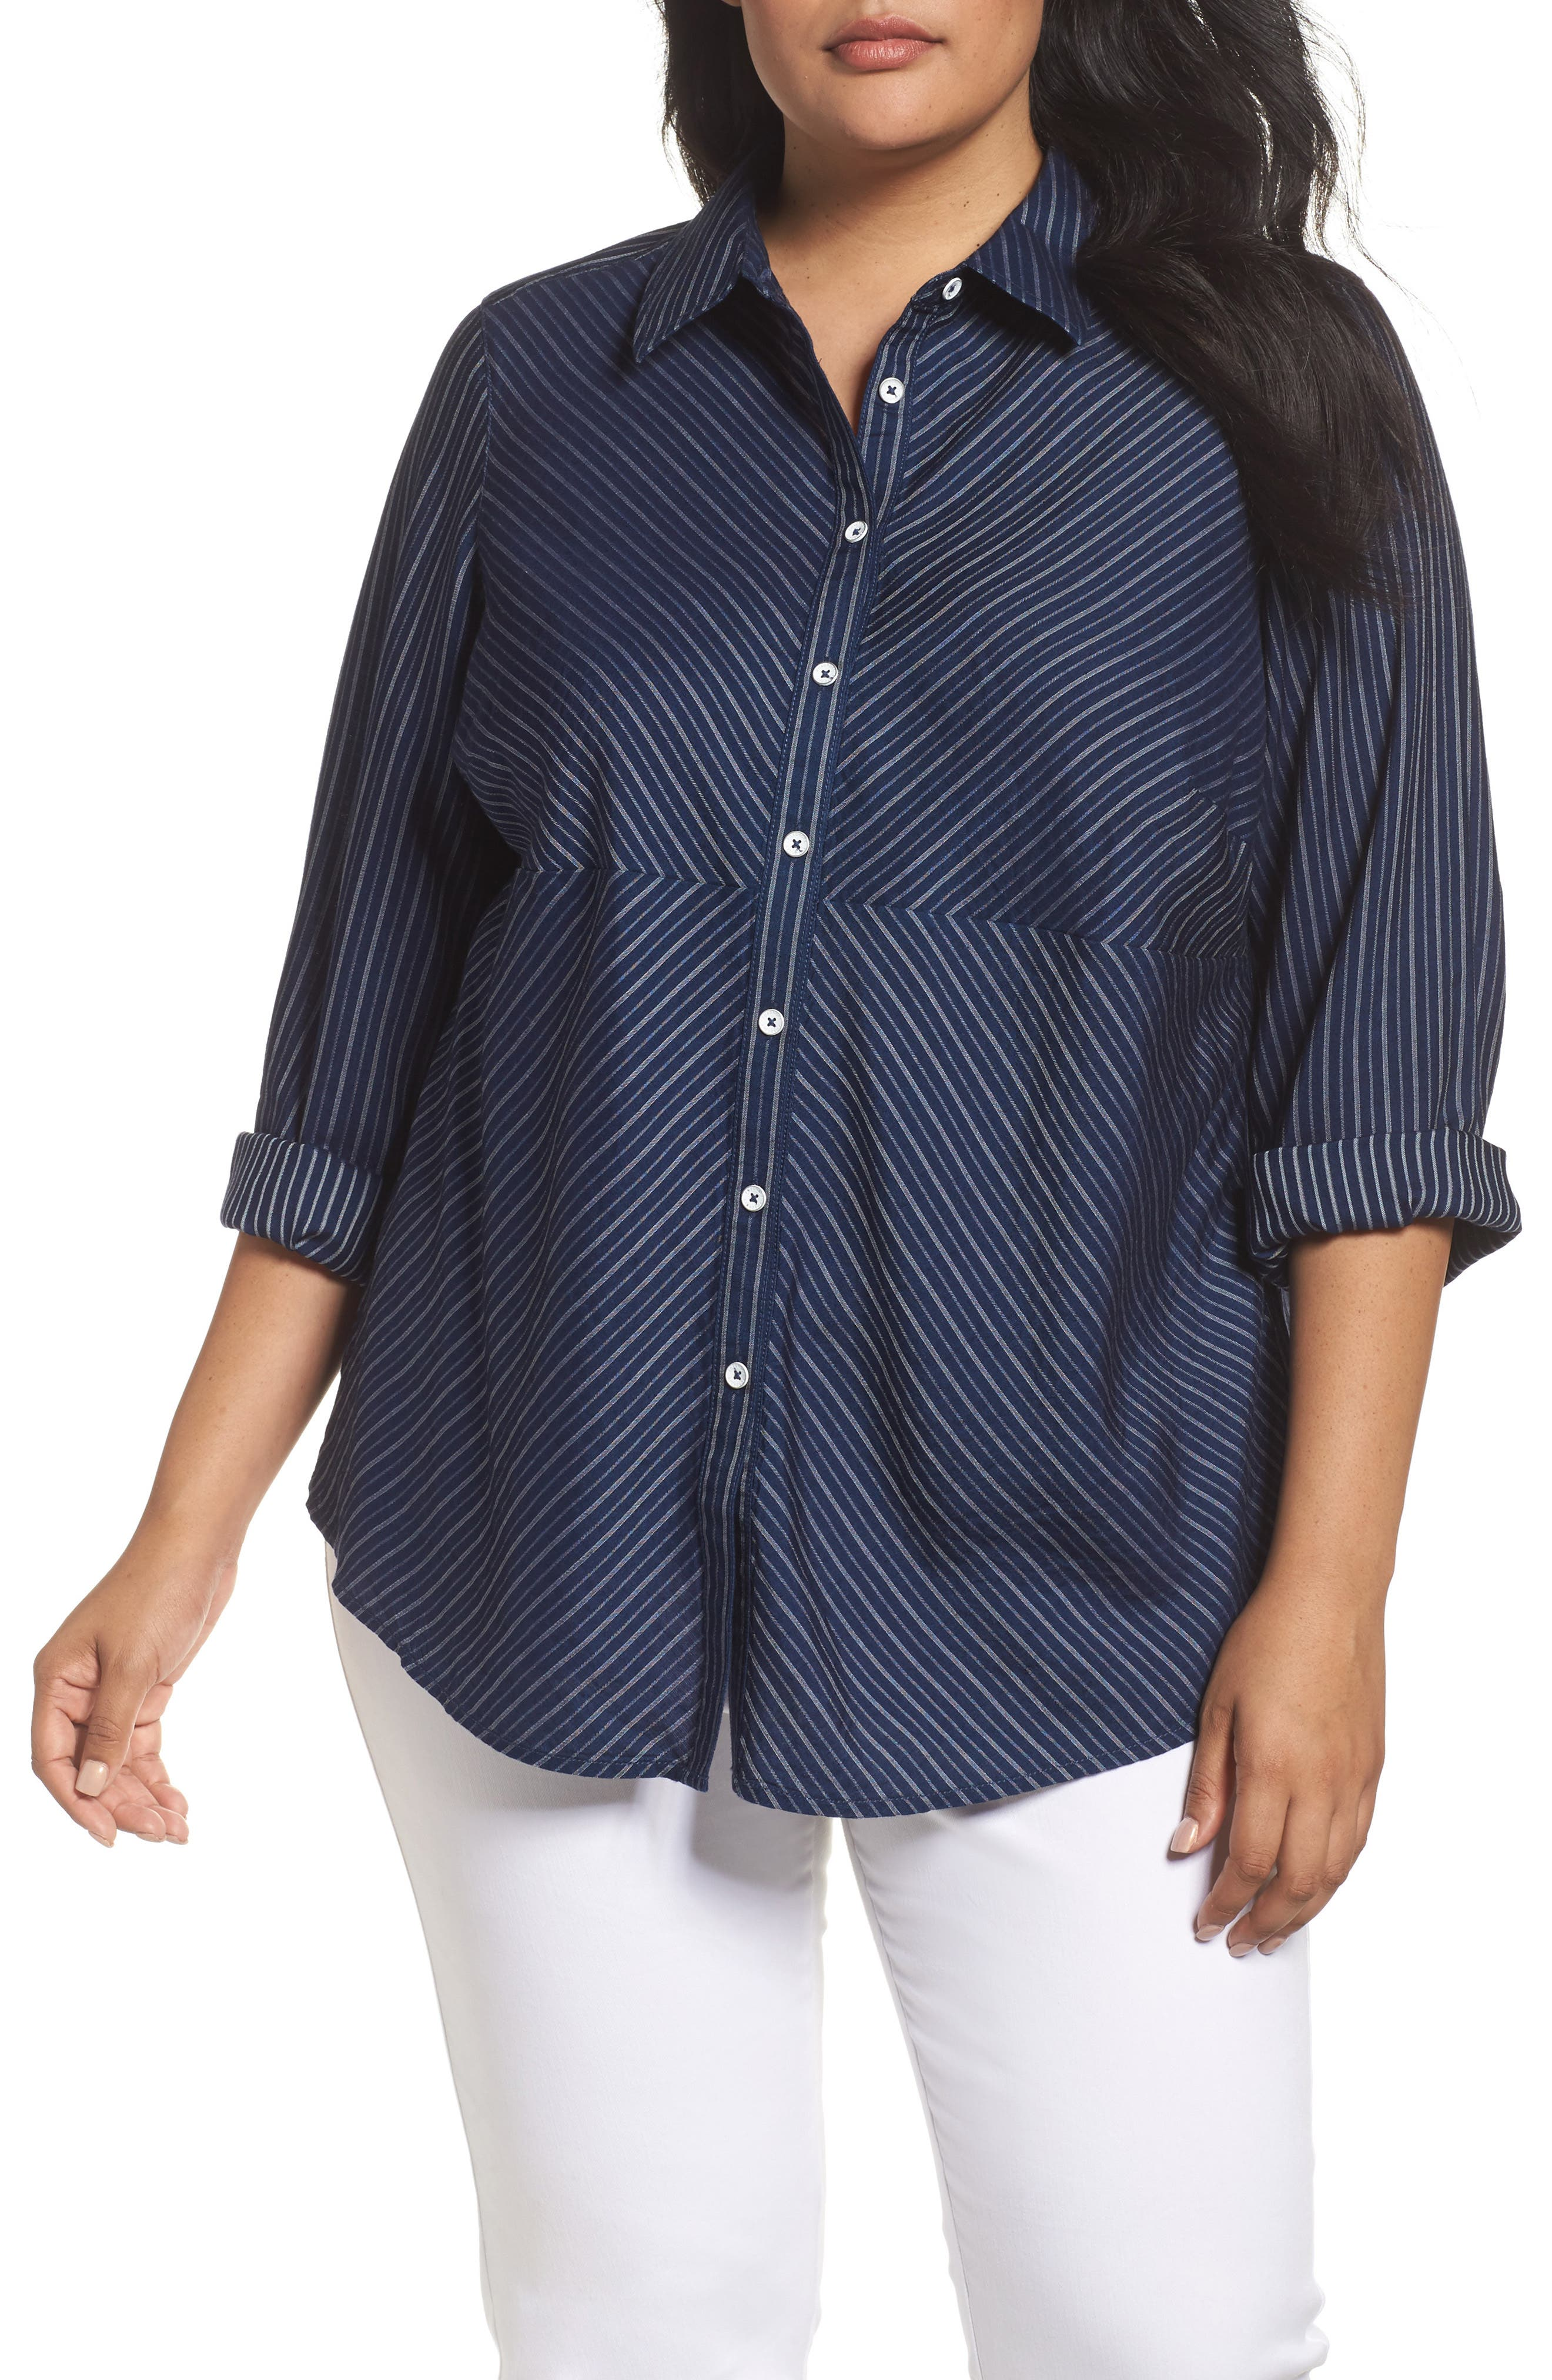 Hazel Pinstripe Shirt,                         Main,                         color,